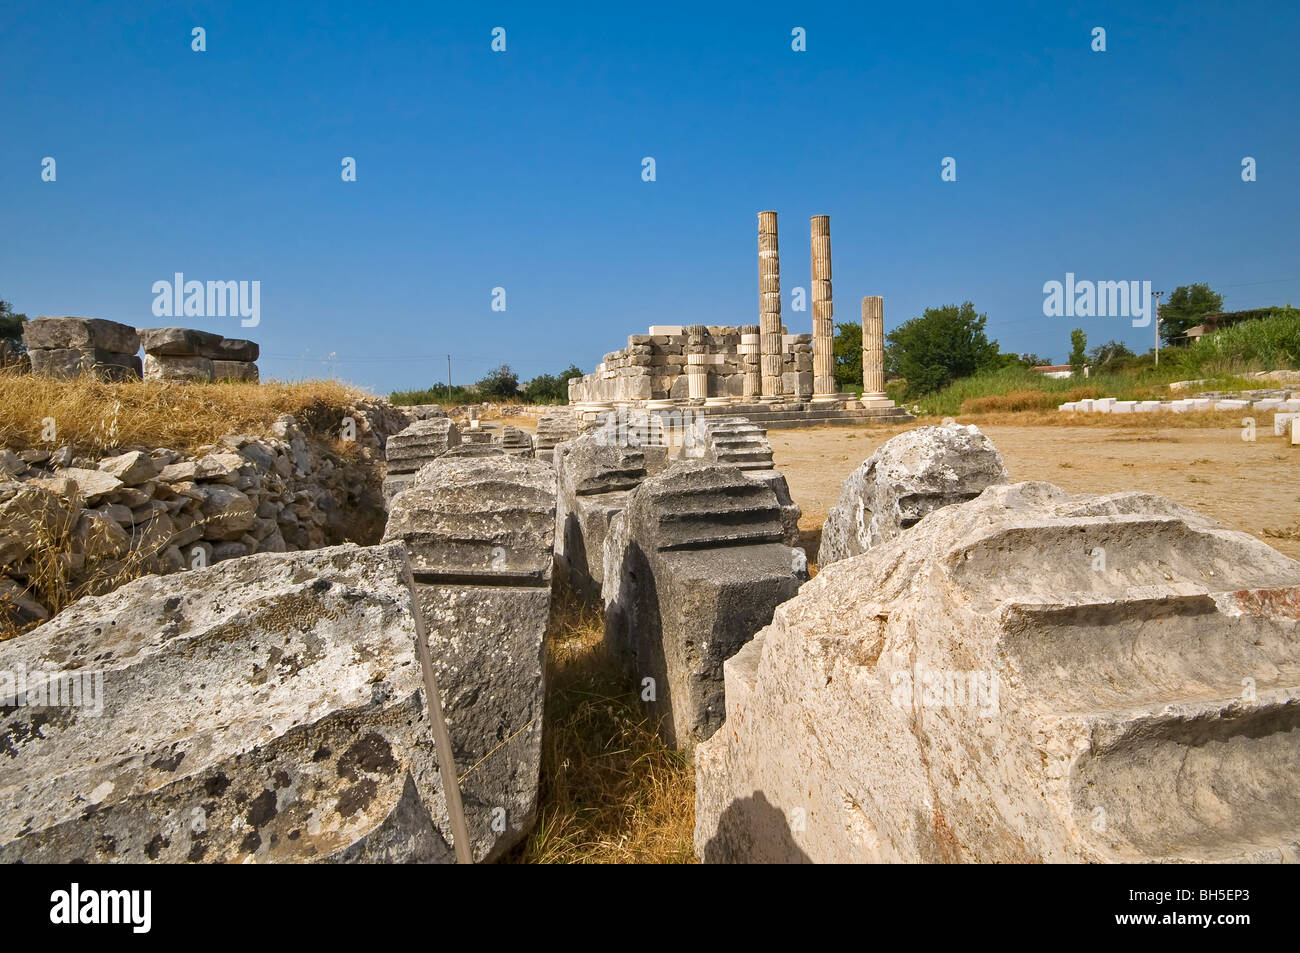 Ancient Ruins at Letoon, Turkey - Stock Image